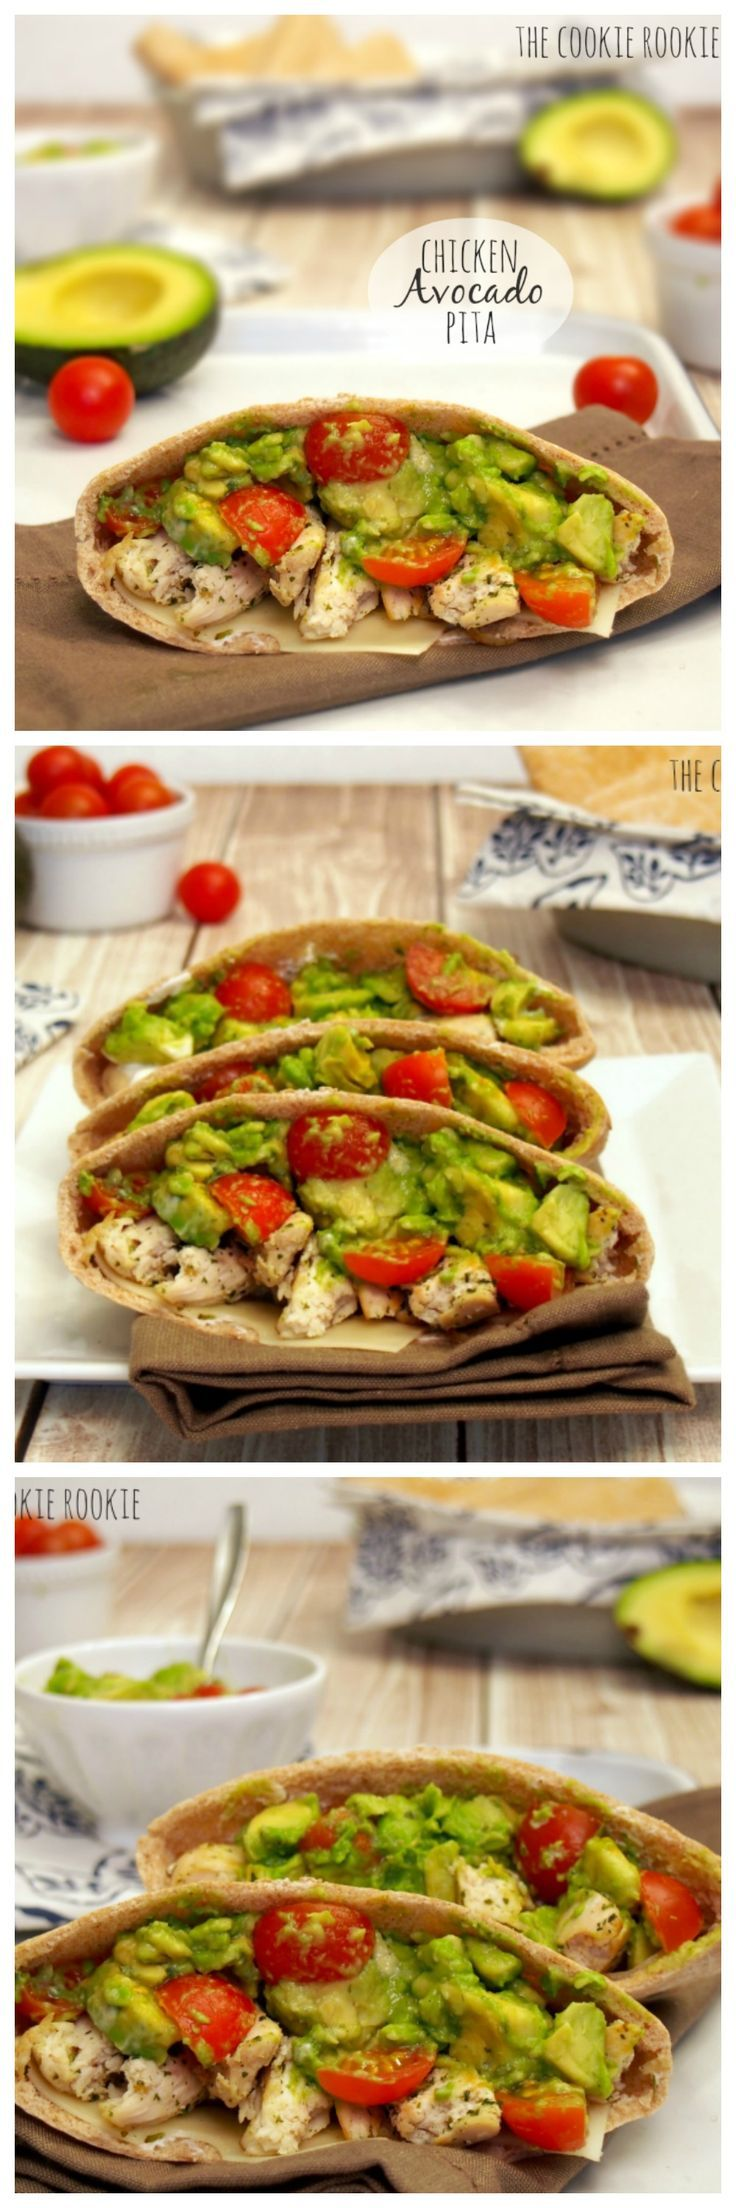 Healthy Grilled Chicken Avocado Pitas are the perfect Summer Treat! Made with Greek Yogurt. - The Cookie Rookie